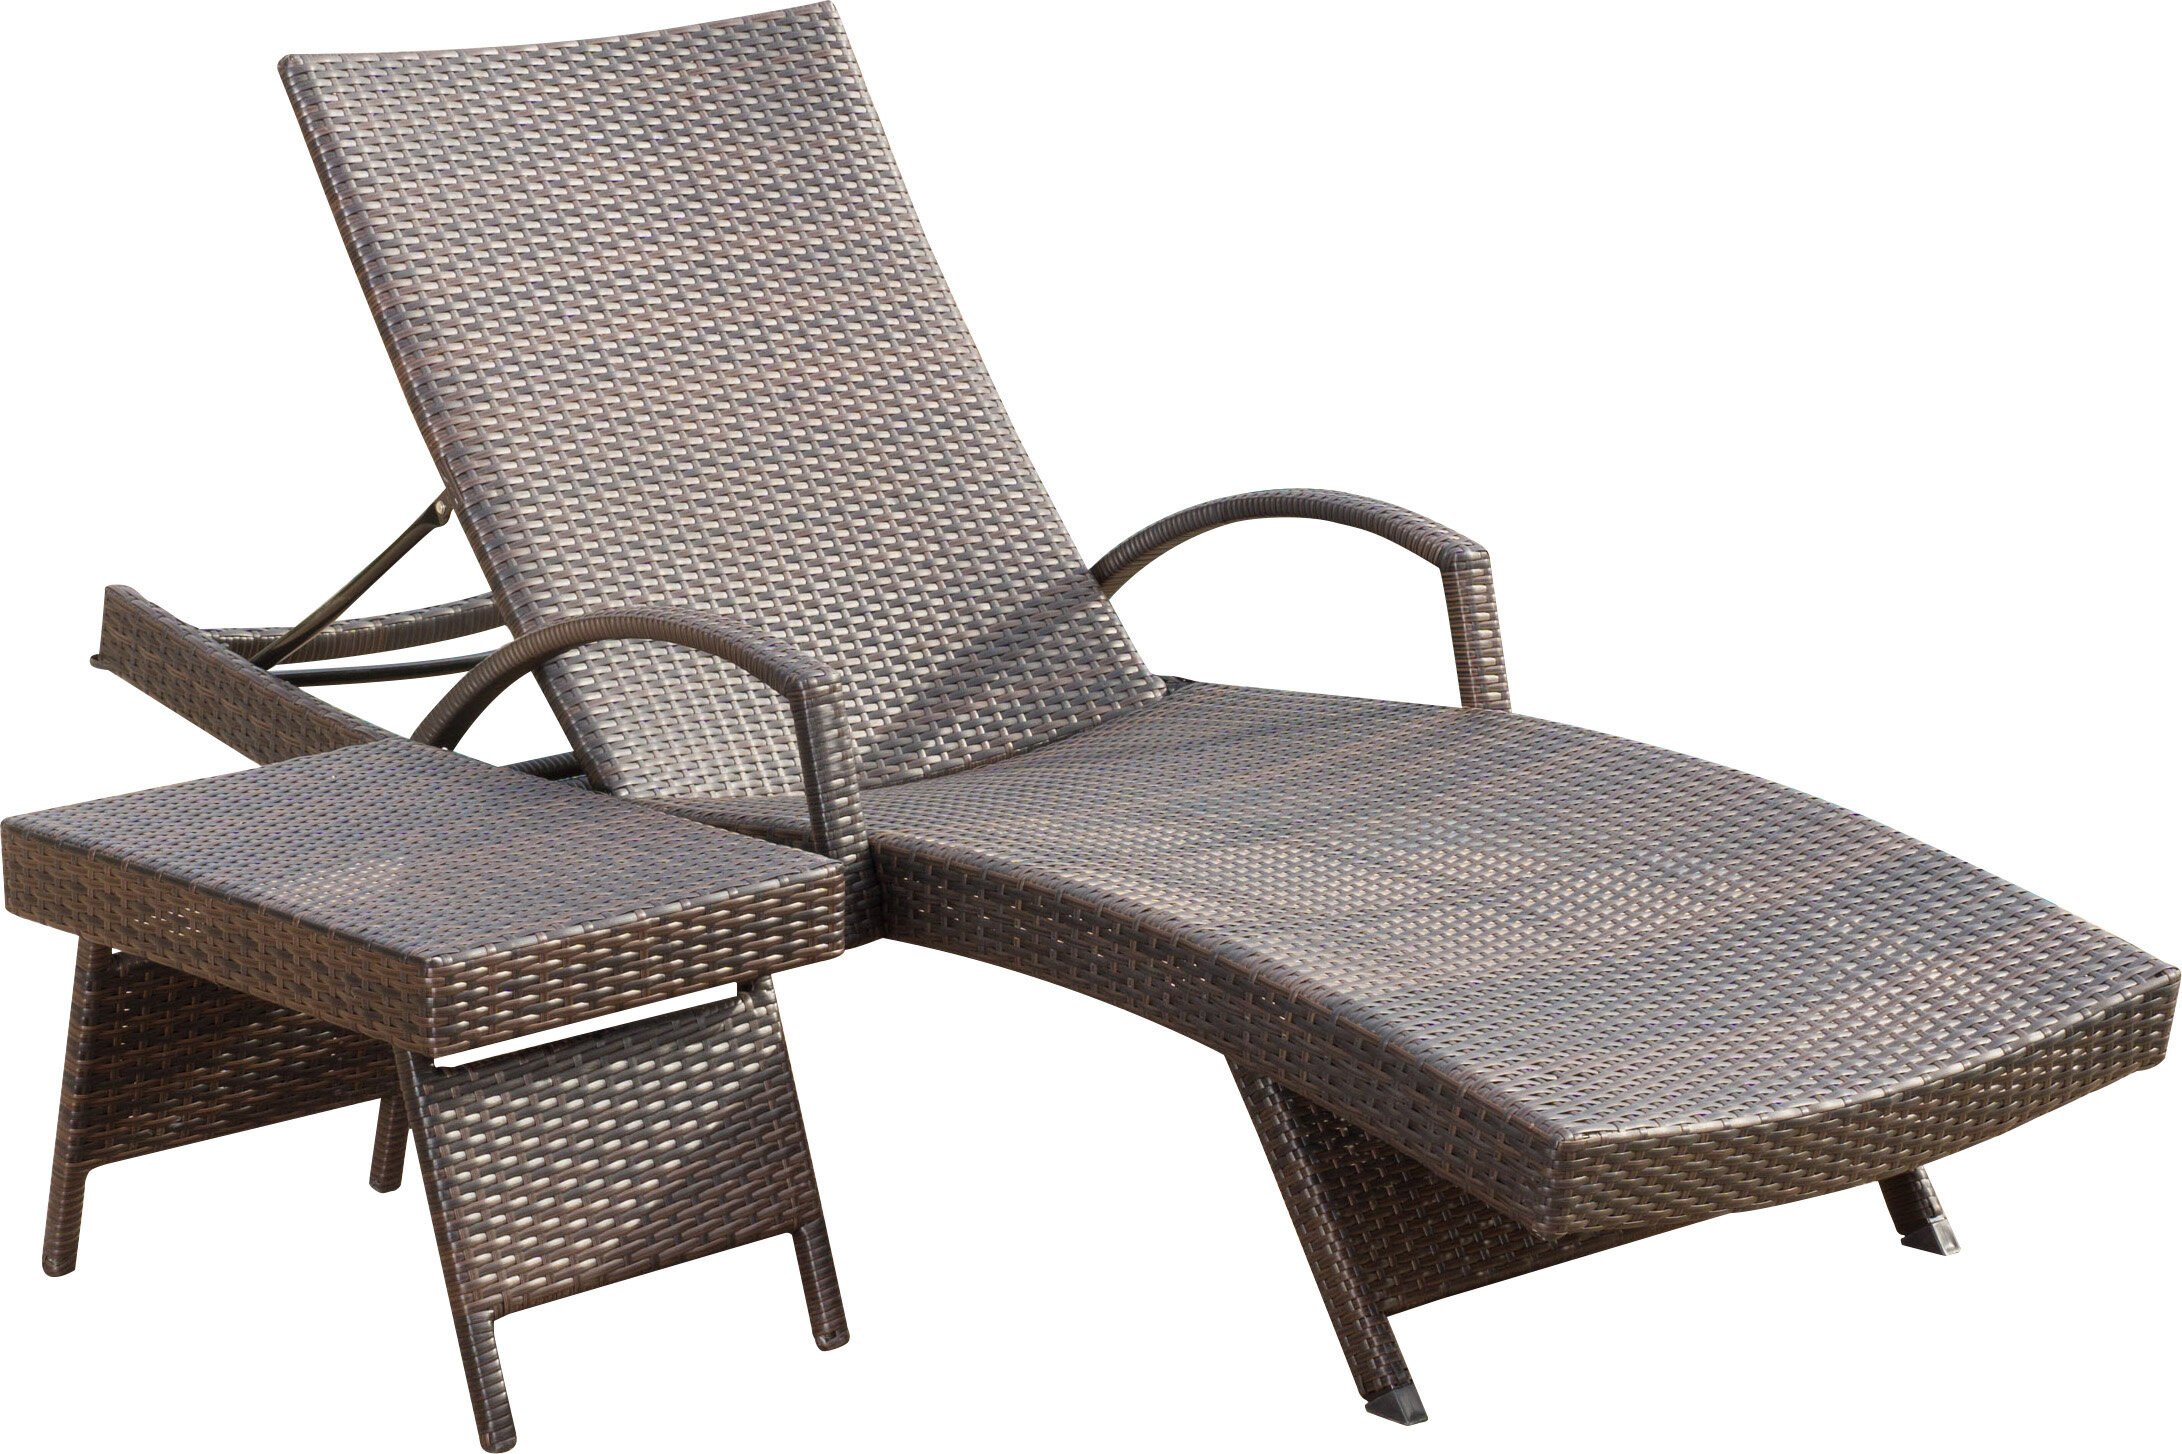 Rebello Adjustable Wicker Reclining Chaise Lounge With Table U0026 Reviews |  AllModern